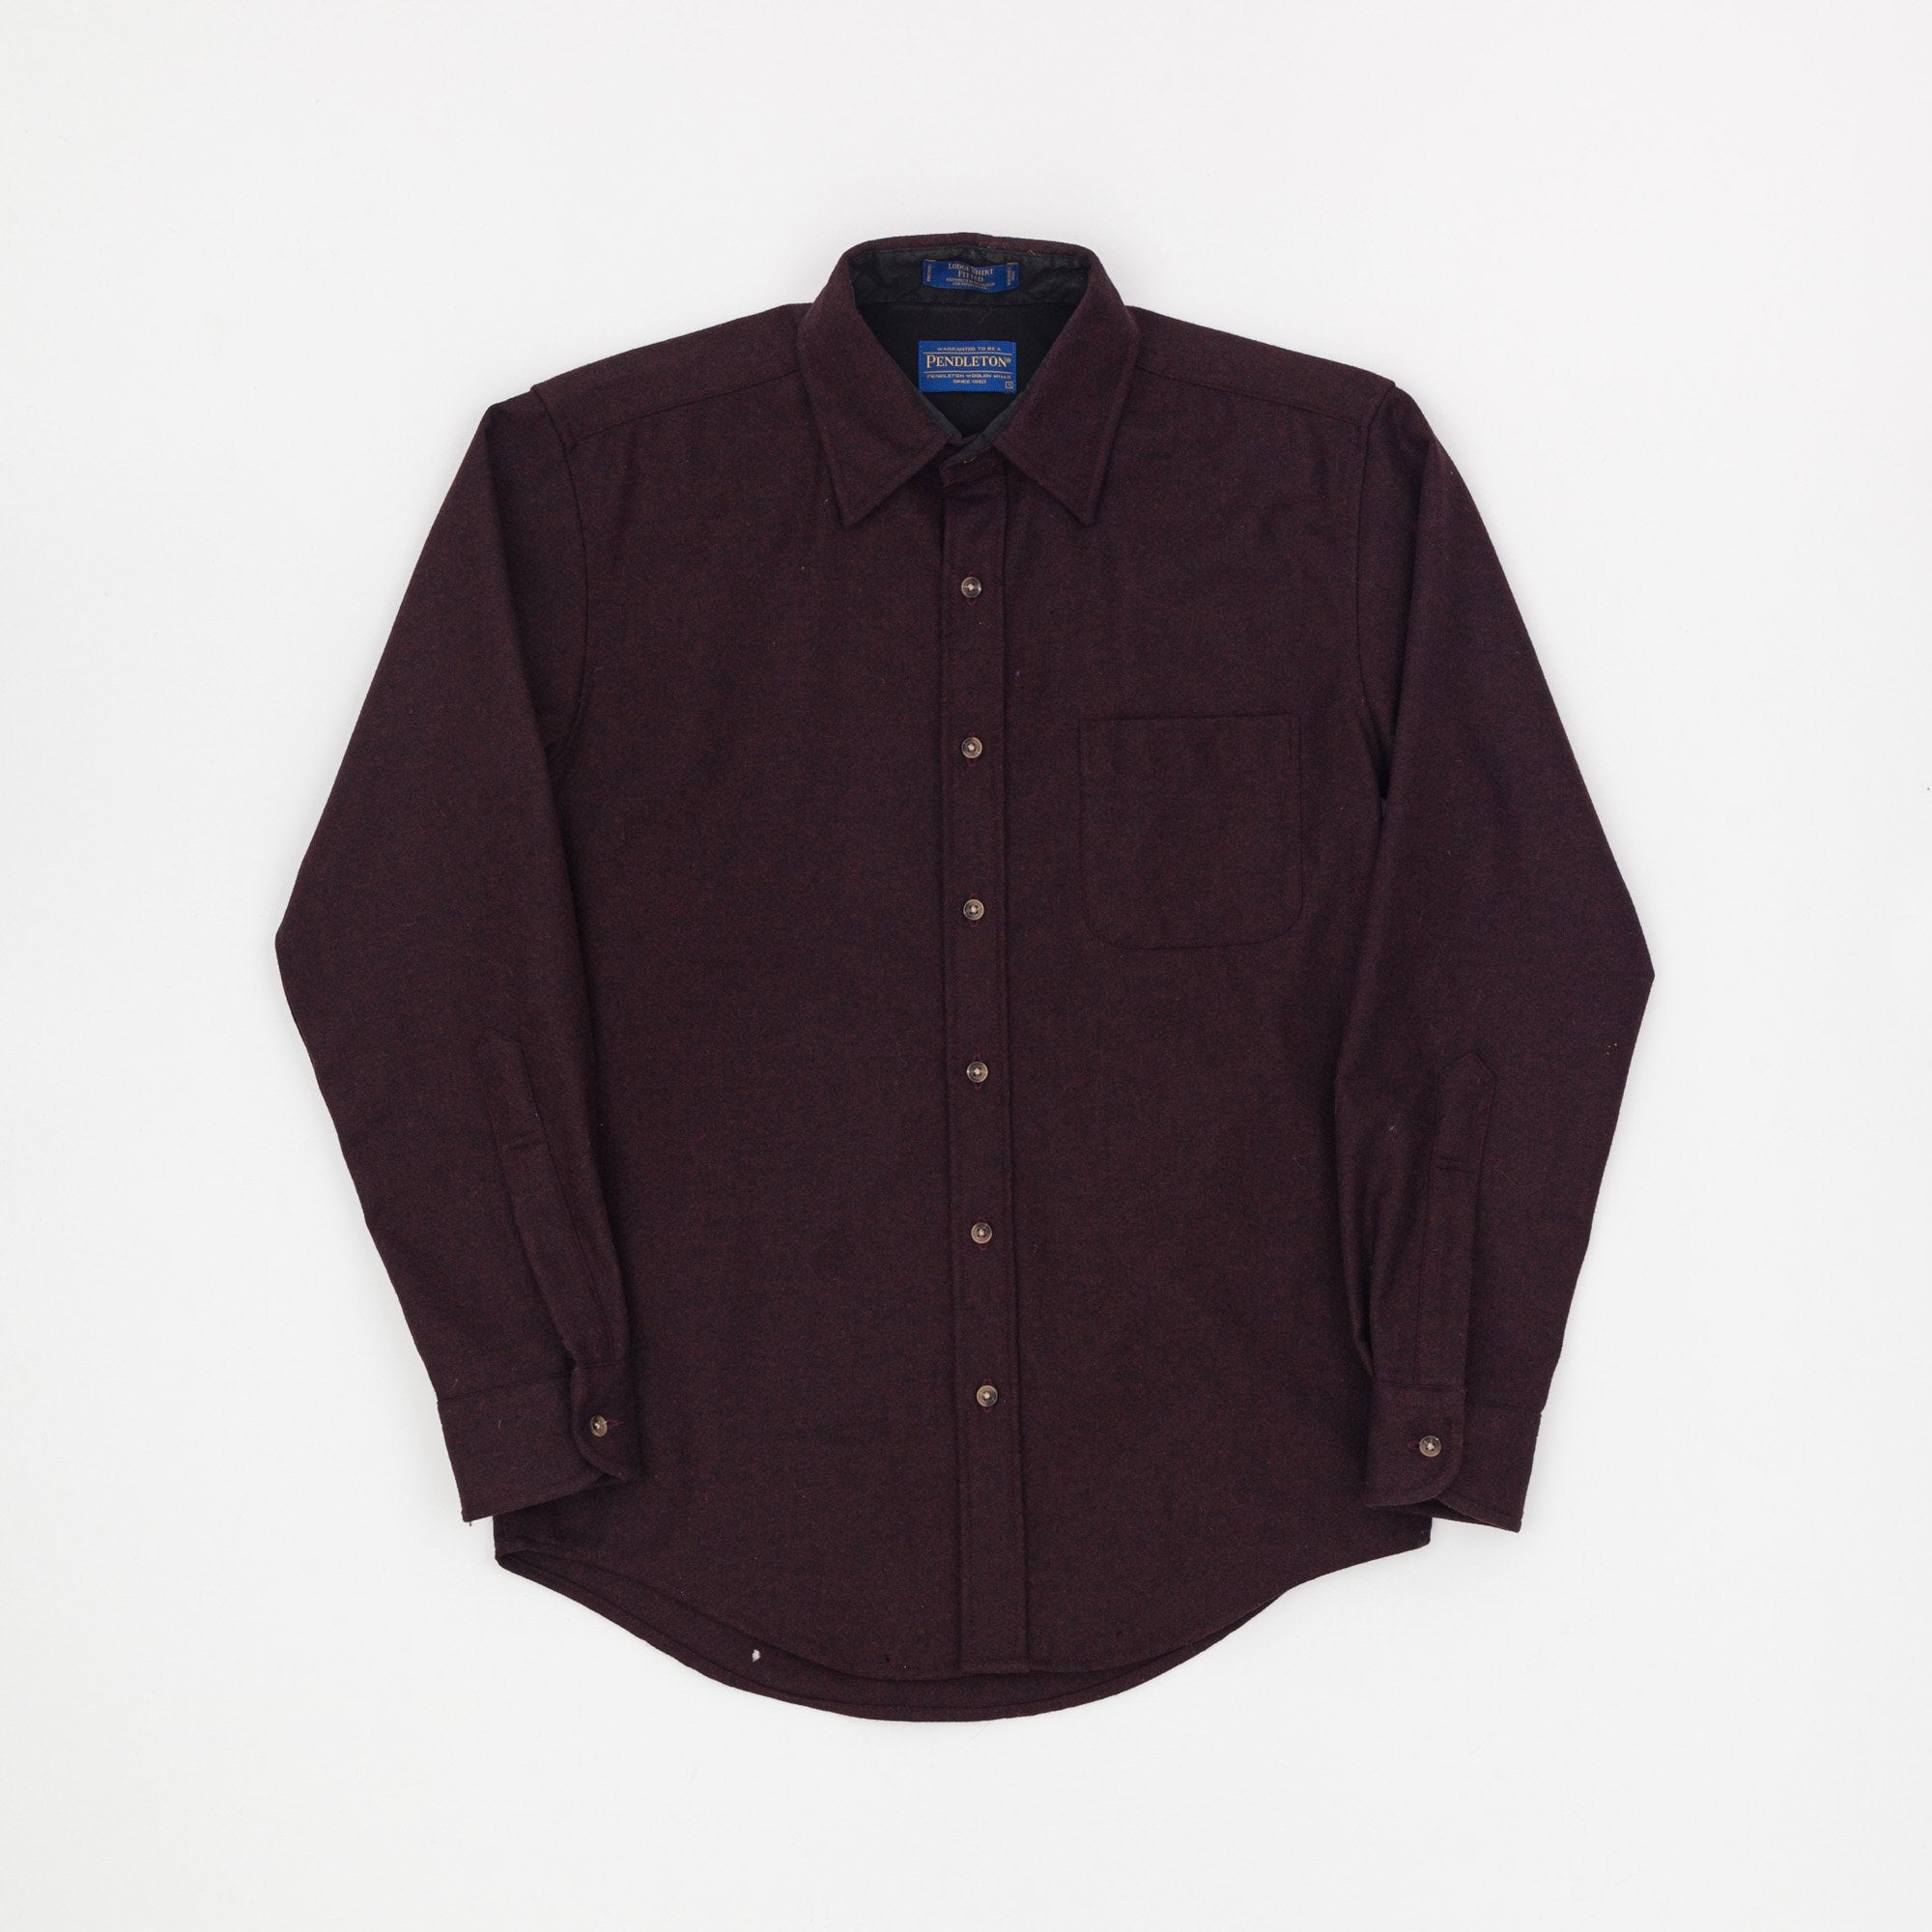 Pendleton Plain Wool Lodge Shirt